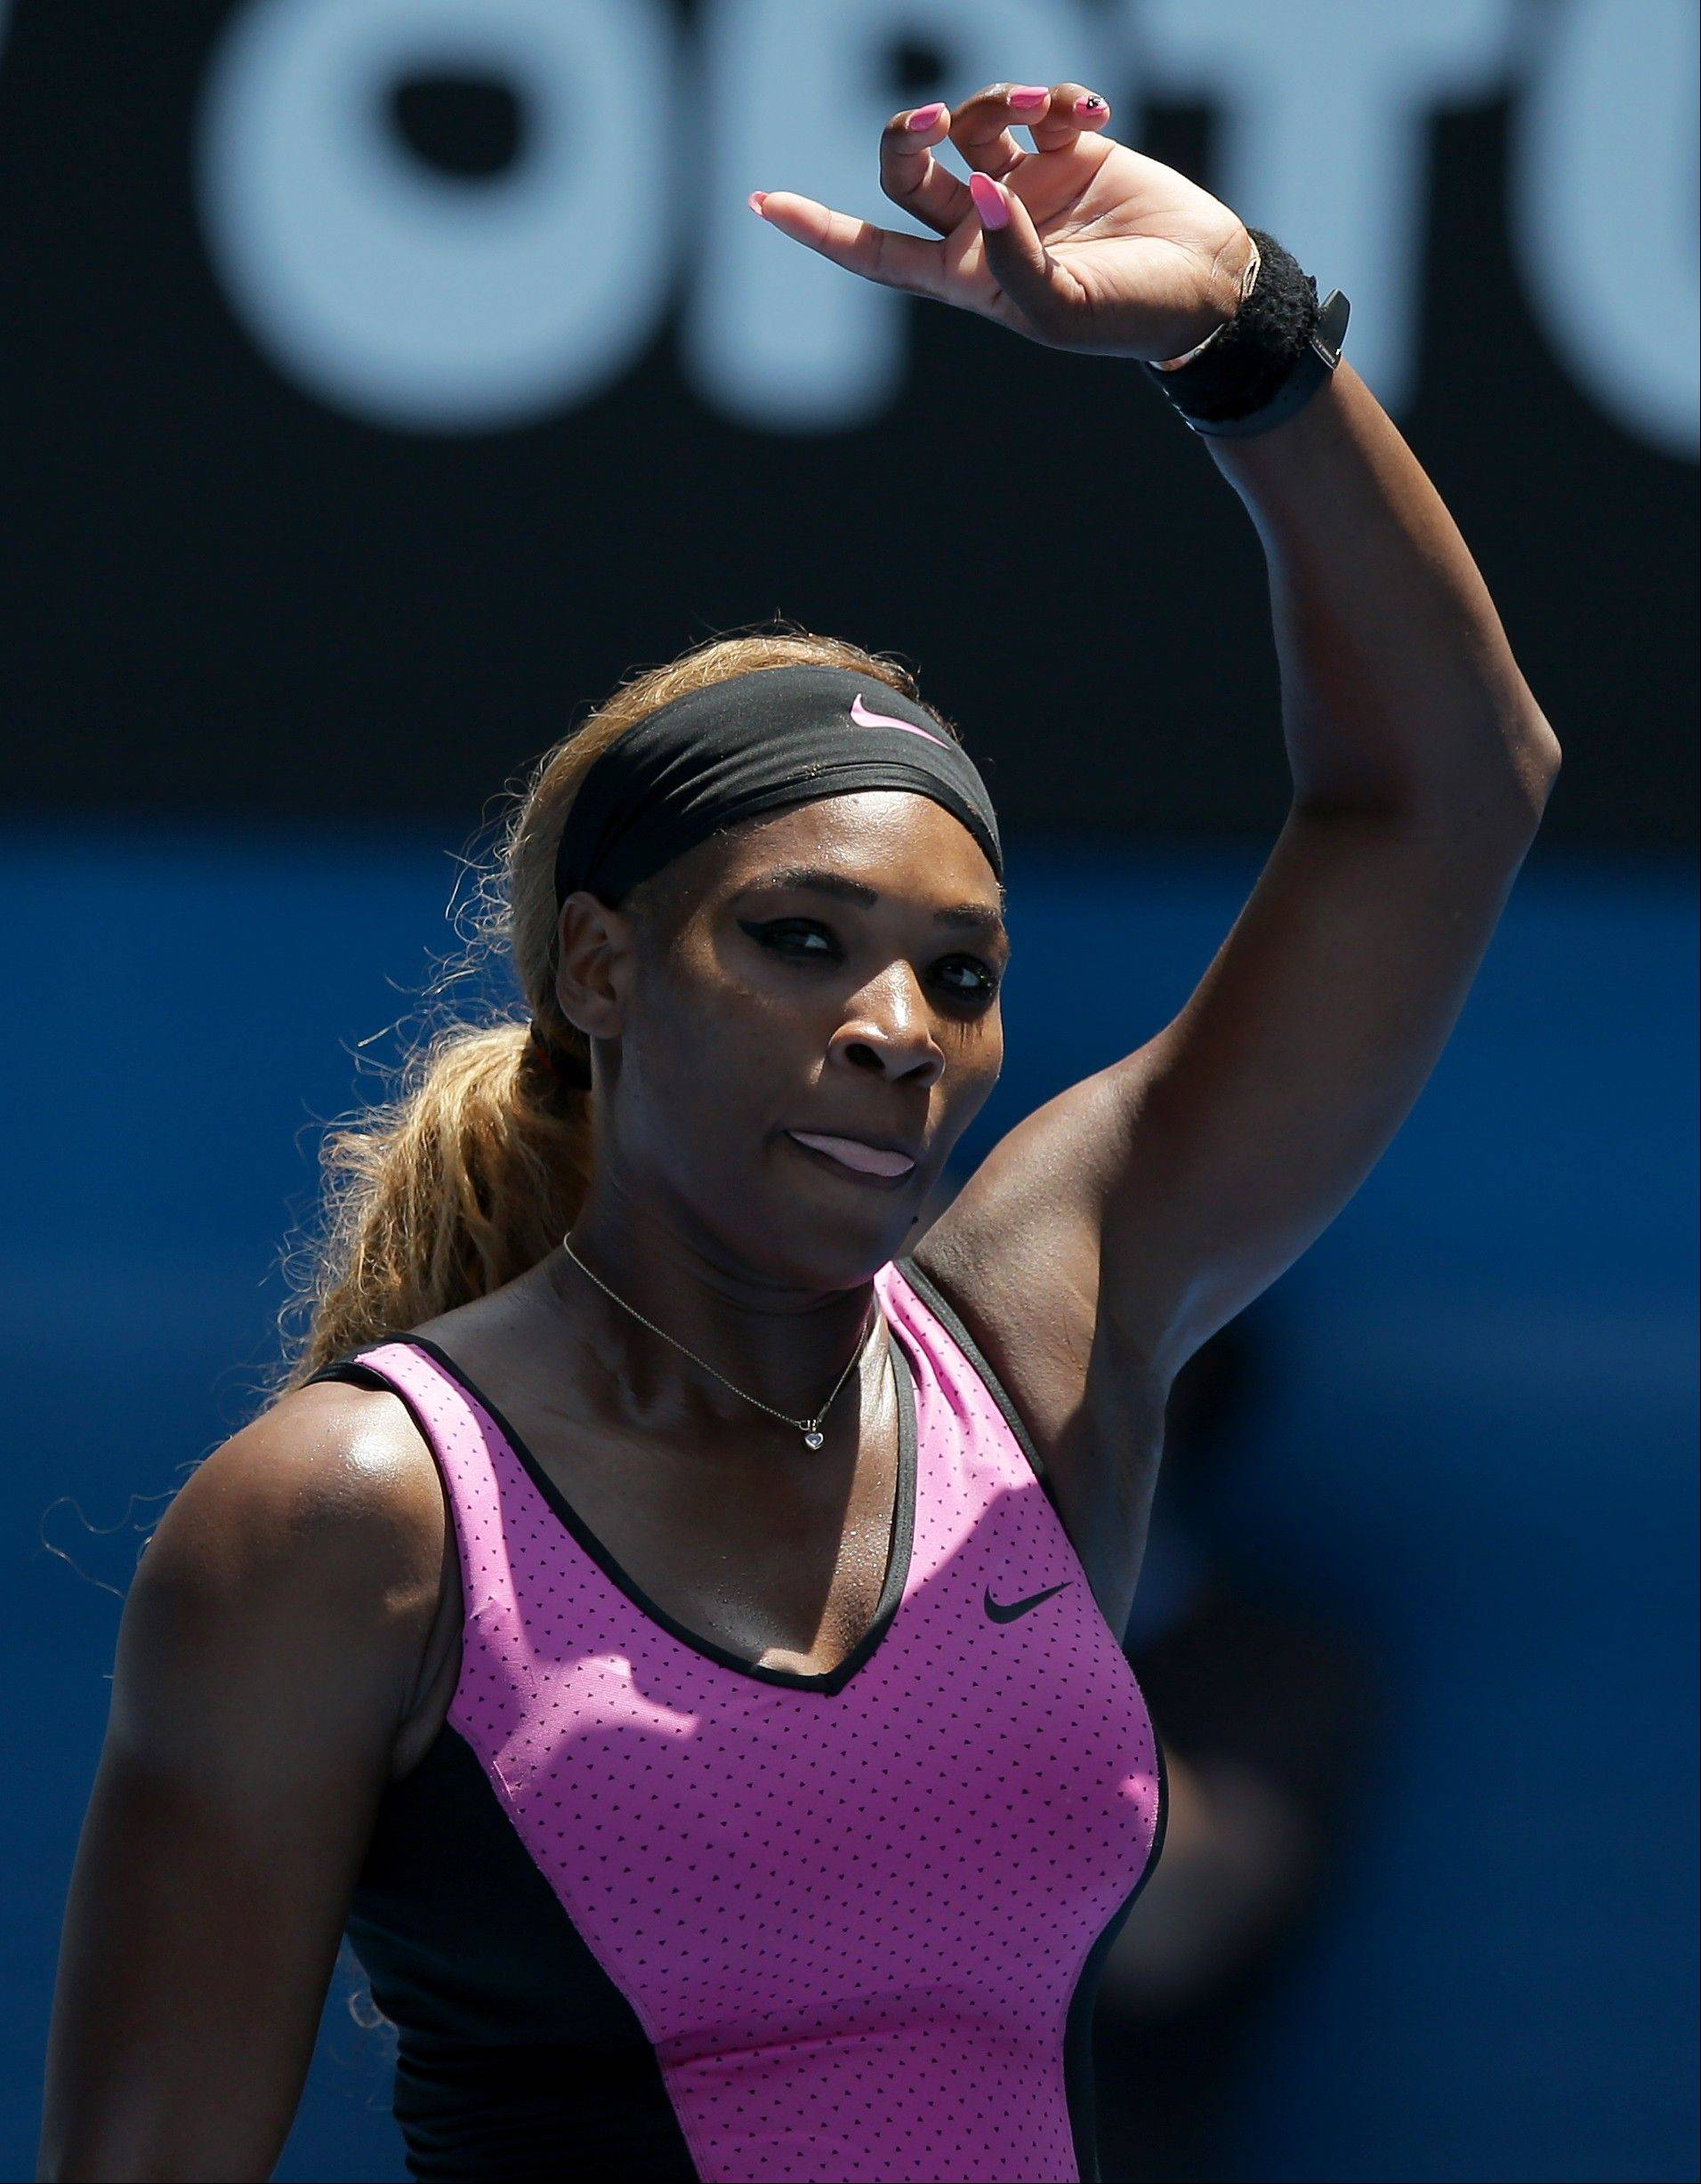 Serena Williams of the United States waves to the crowd after defeating Vesna Dolonc of Serbia in their second round match at the Australian Open tennis championship in Melbourne, Australia, Wednesday, Jan. 15, 2014.